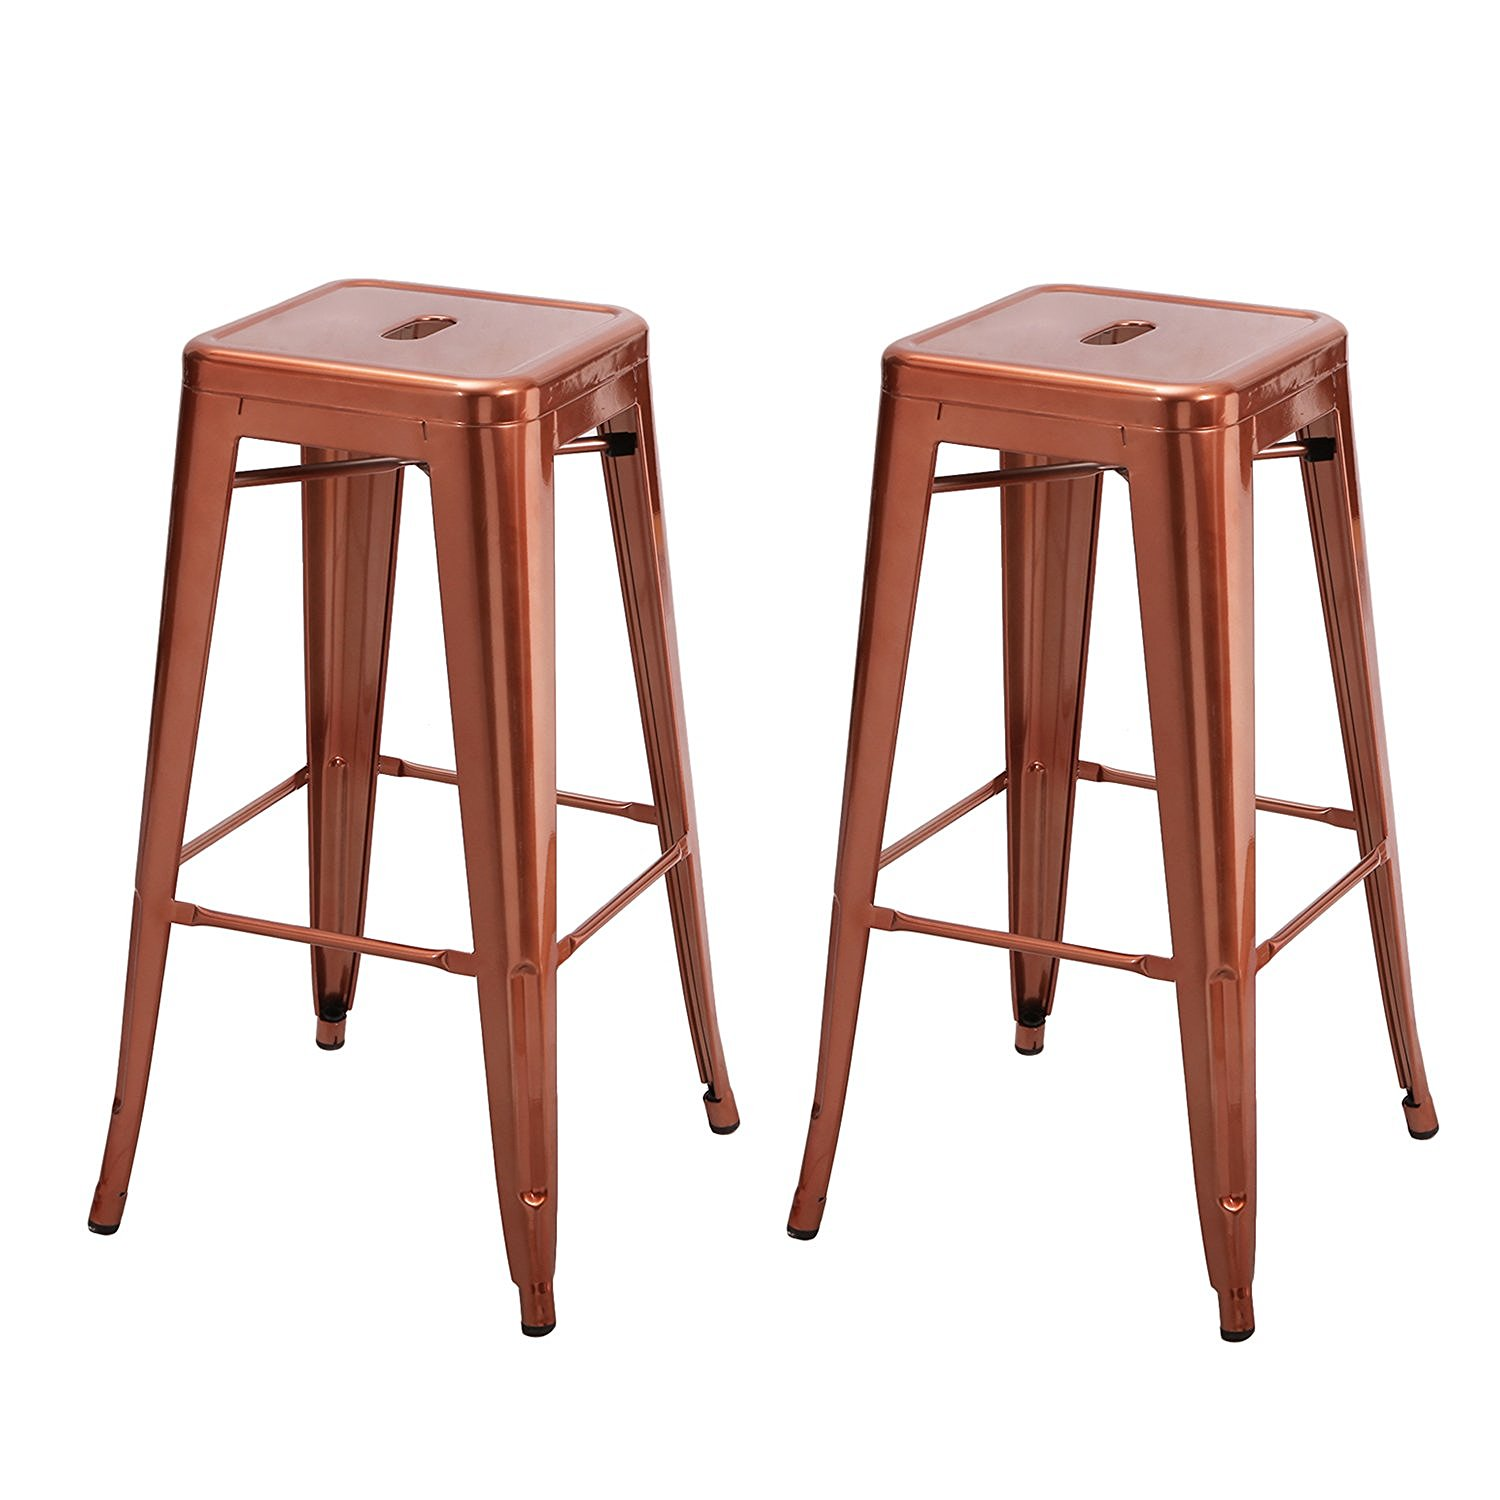 "Image of Adeco 30"" Coffee Gold Metal Bar Stools (Set Of 2)"